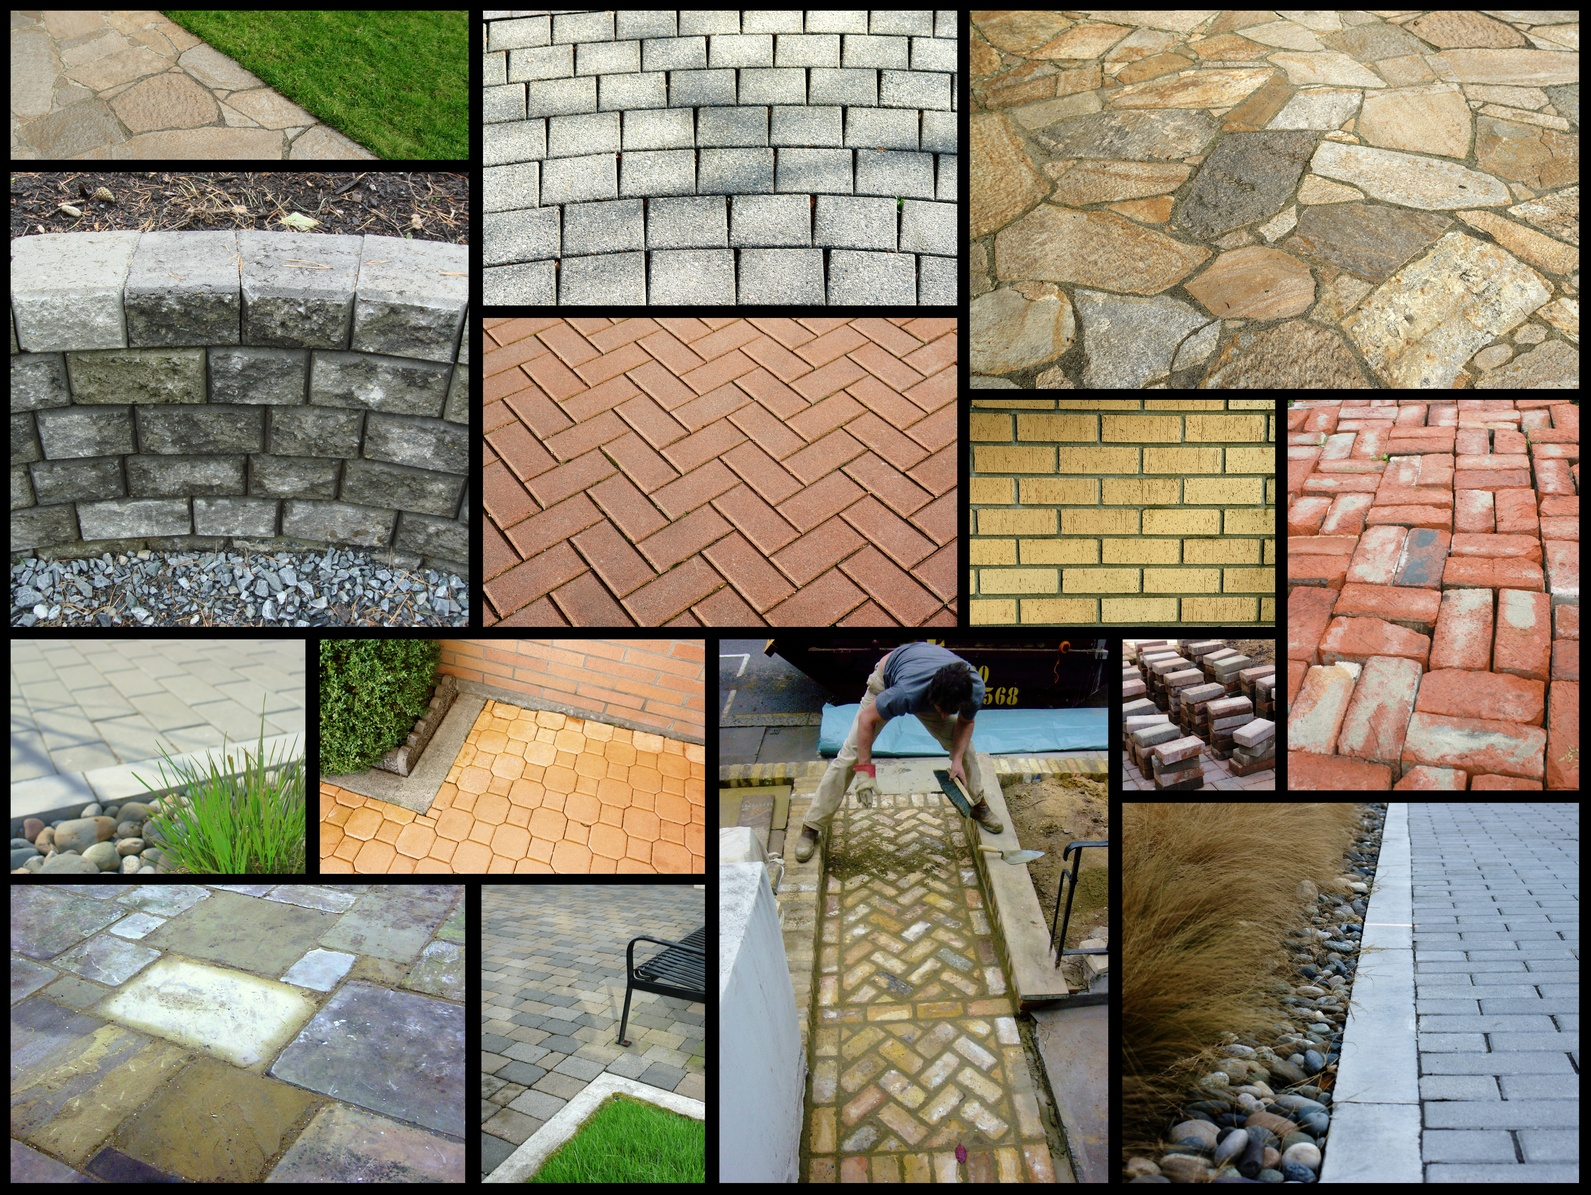 Stone Mason - Masonry Clarkston, Michigan